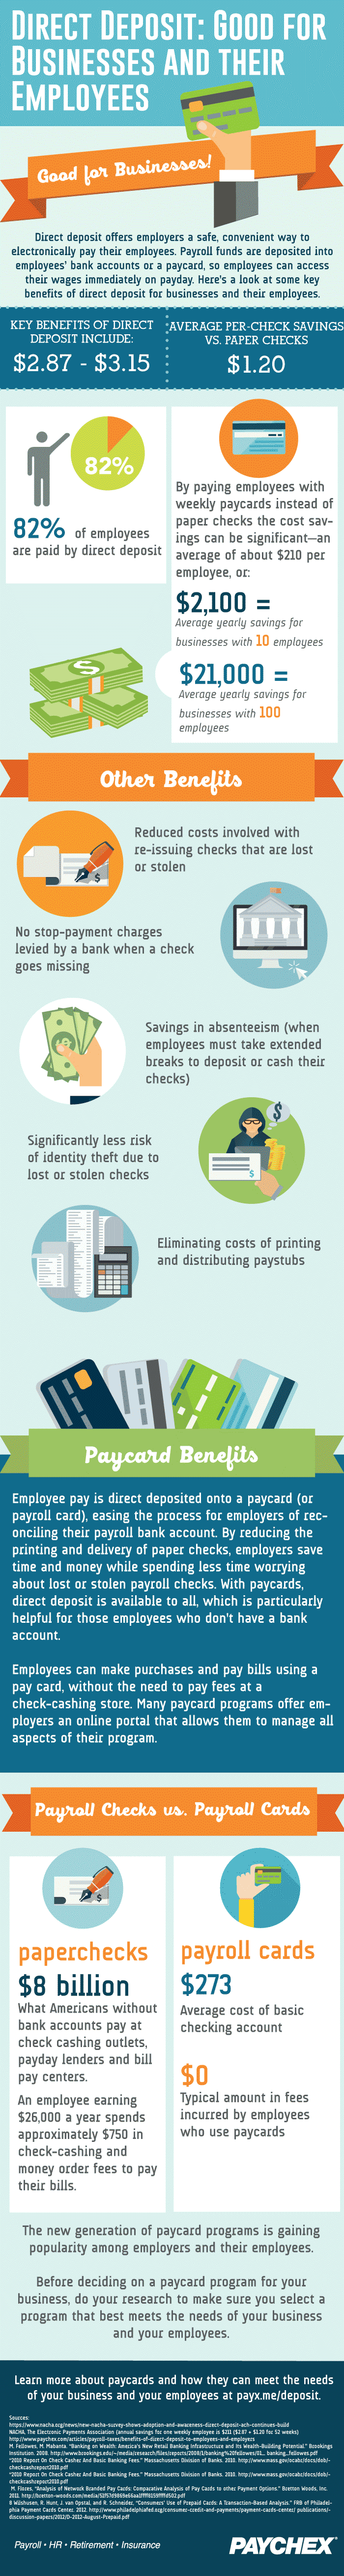 benefits of direct deposit infographic